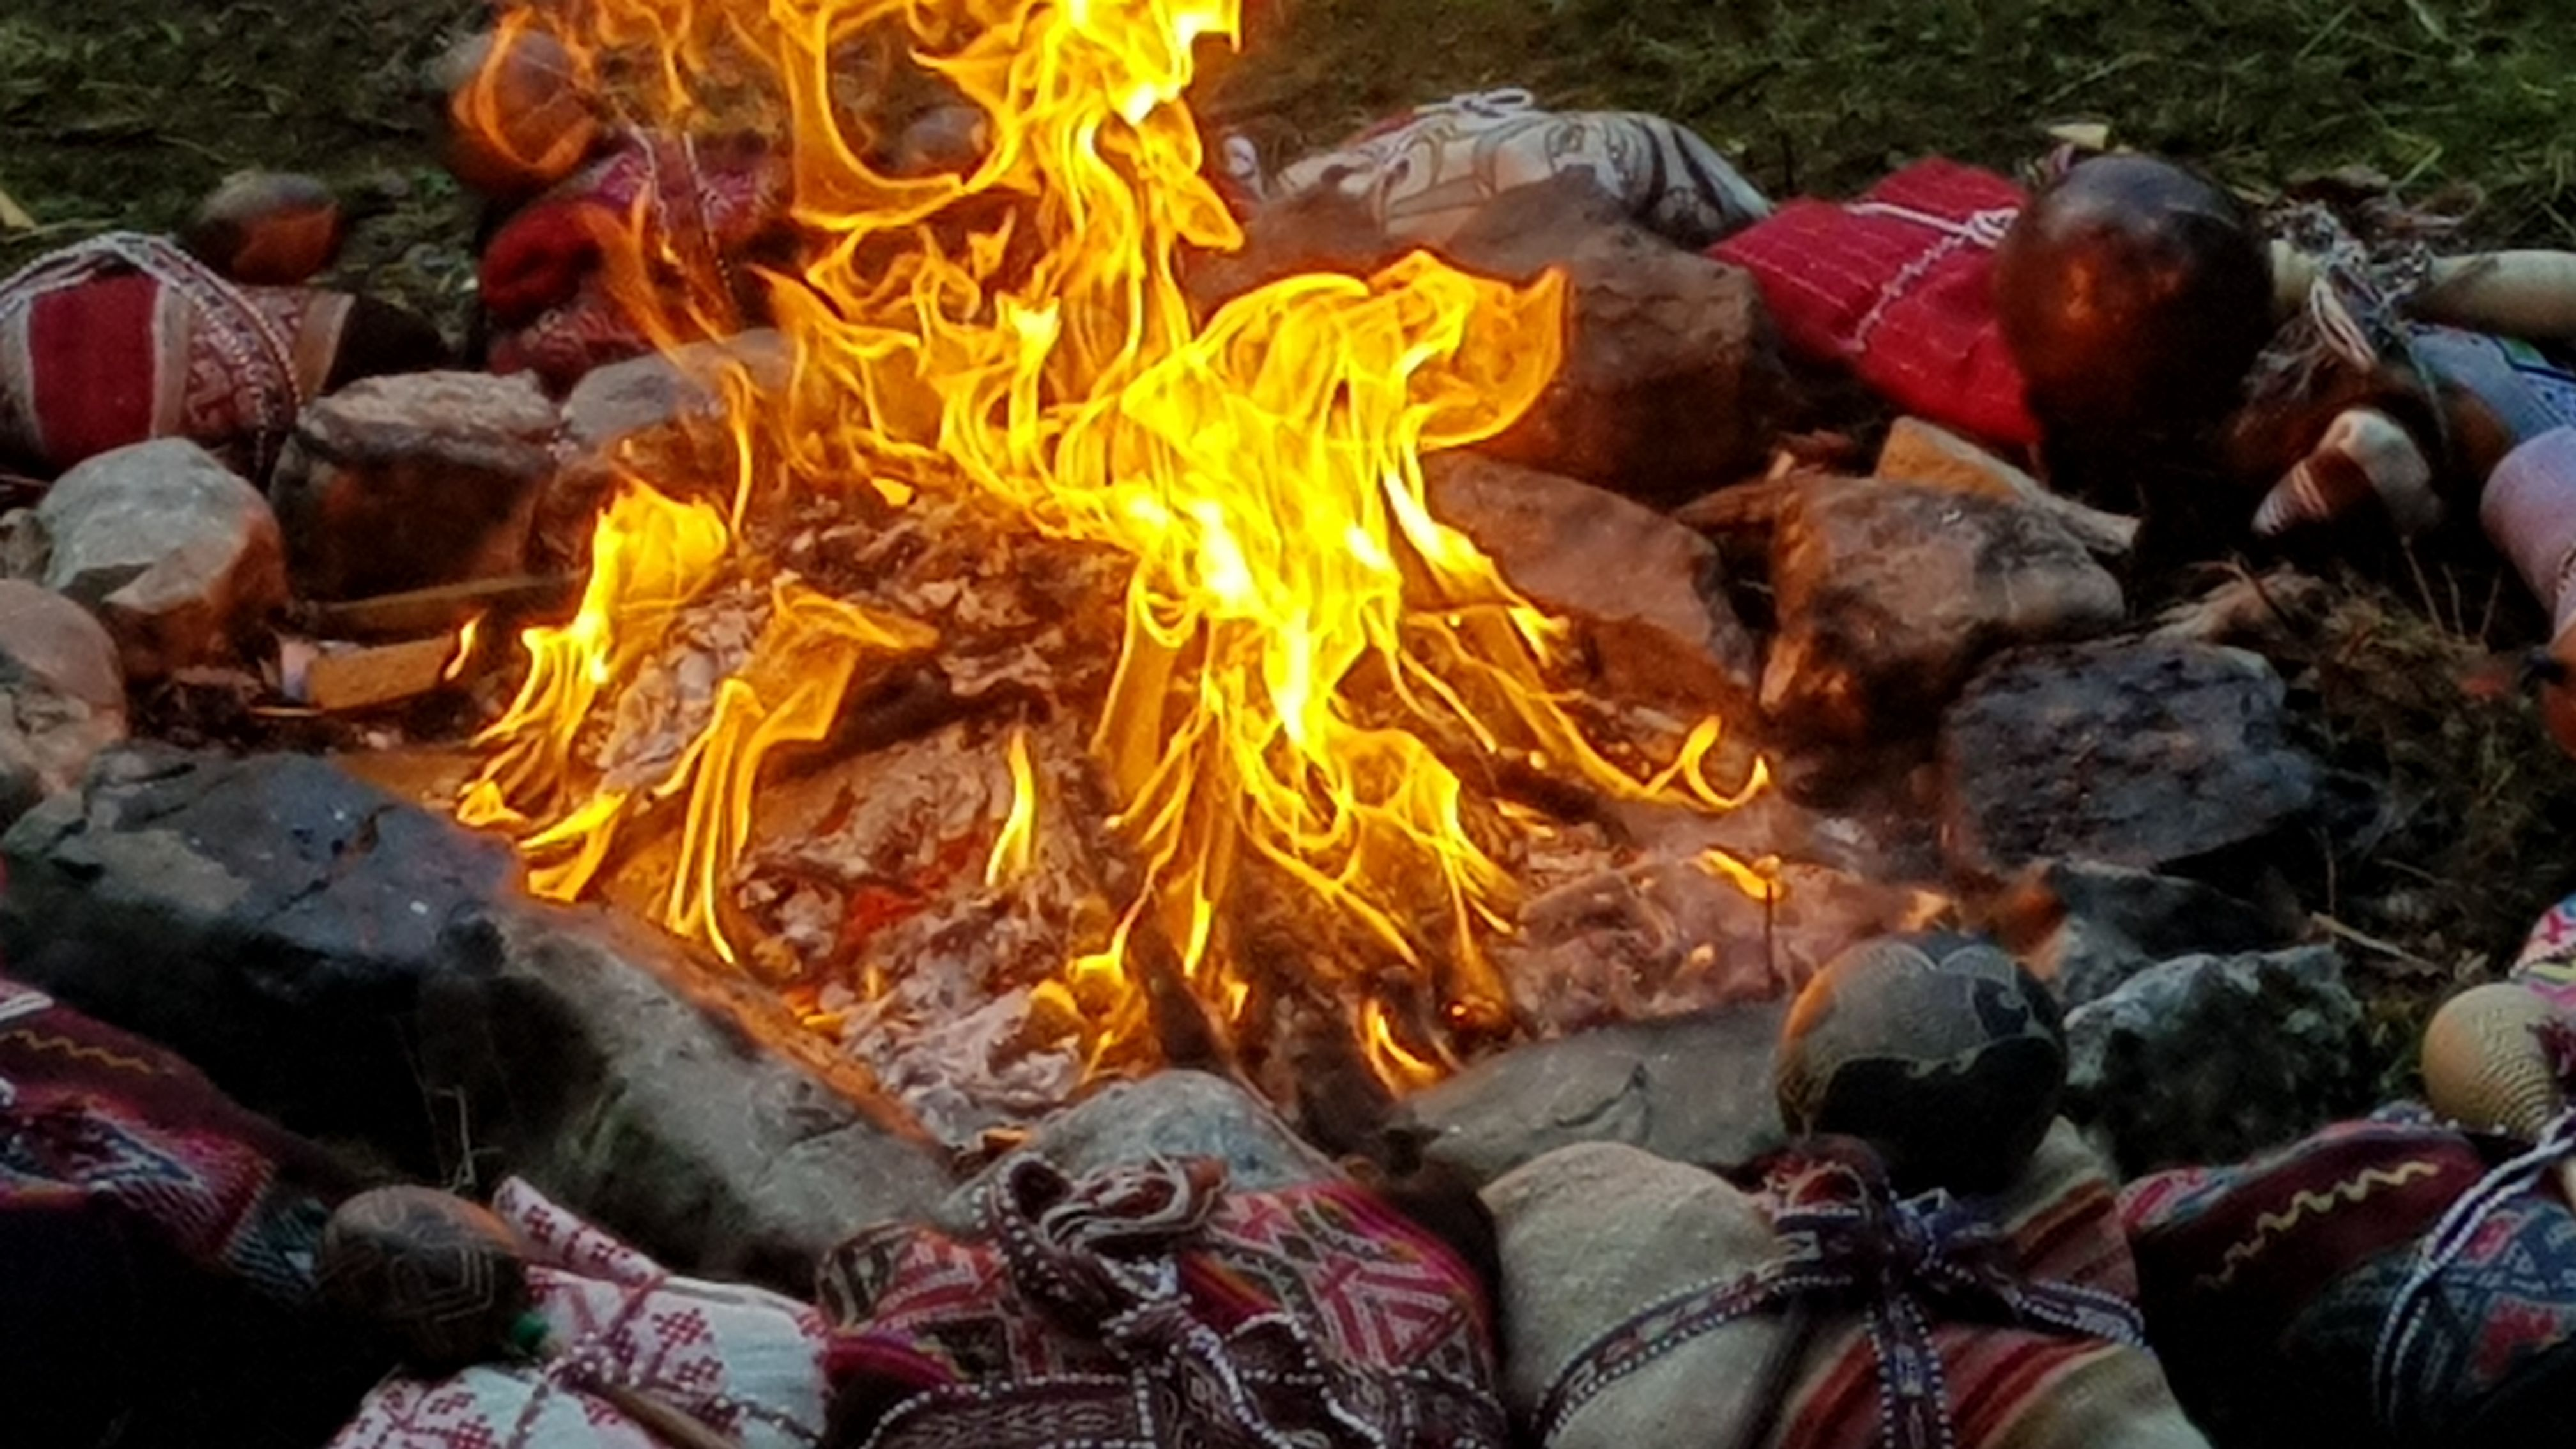 Fire ceremony for the New Moon in the Inca tradition